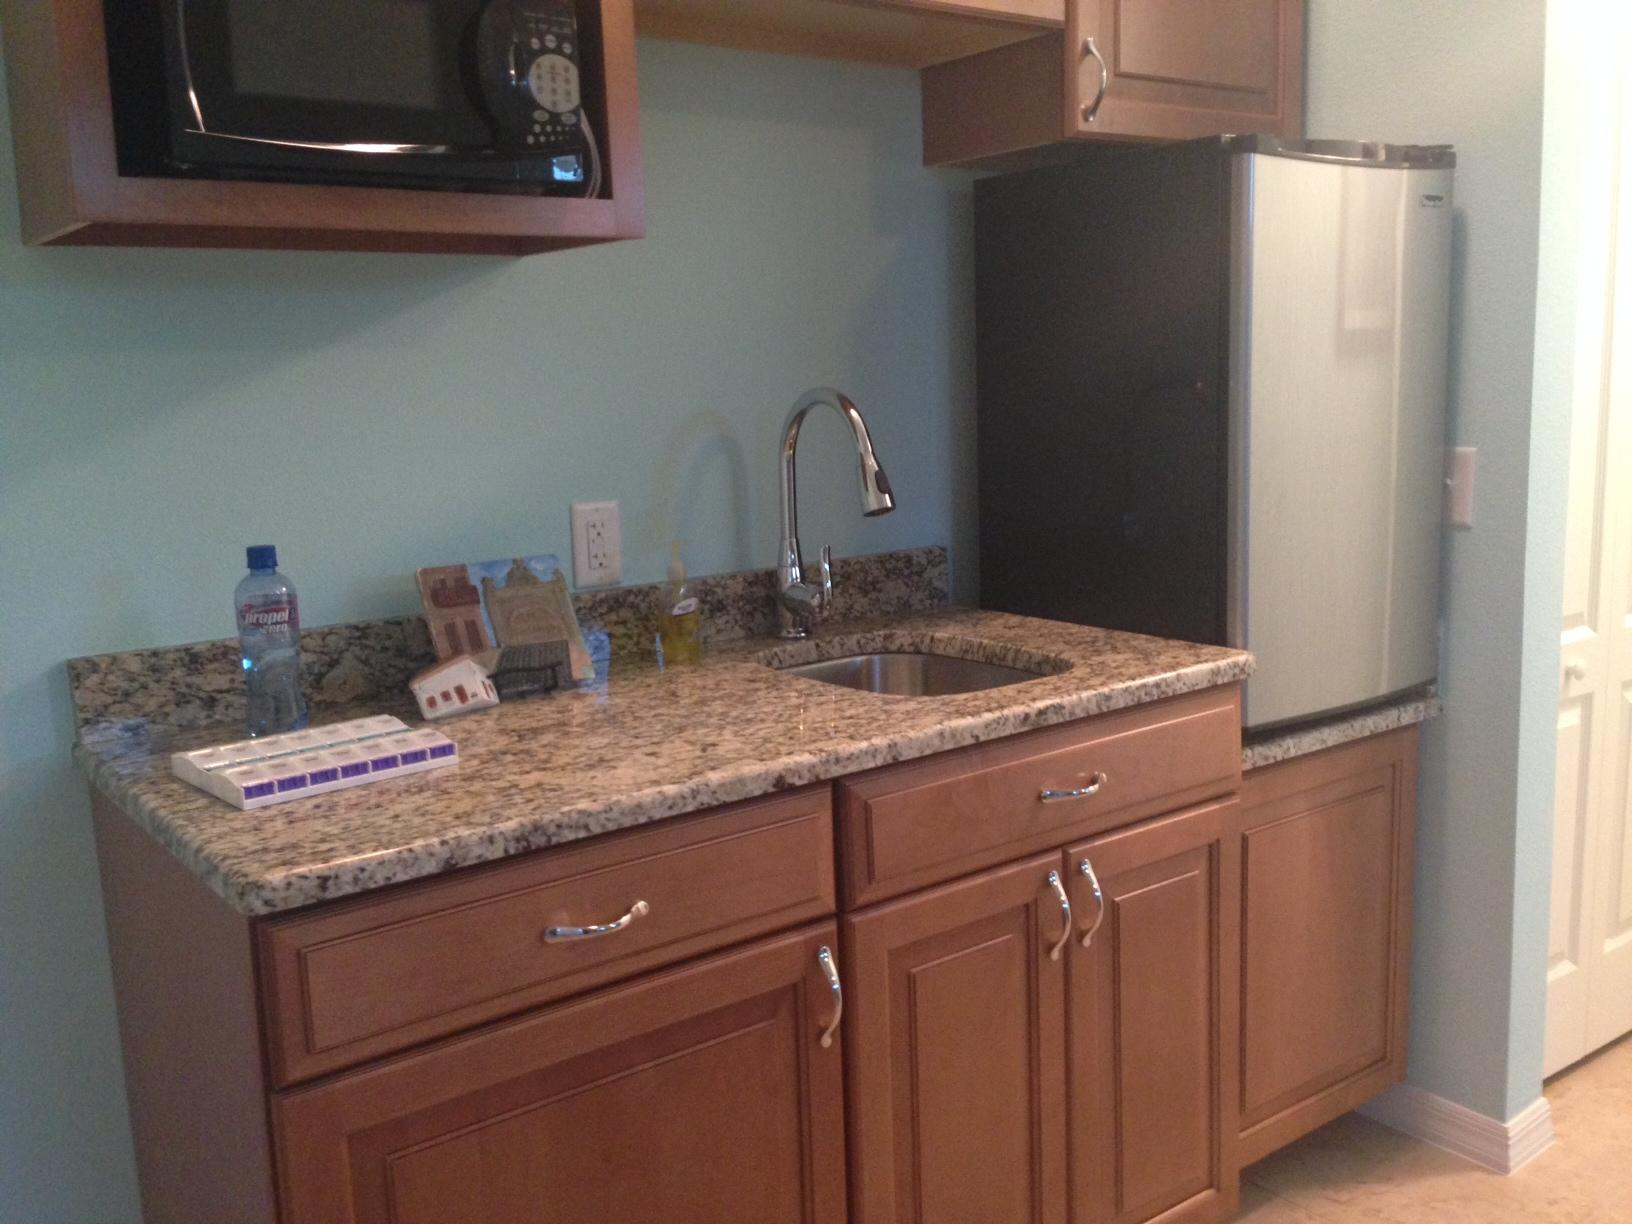 How To Make The Best Of Your Kitchenette: Florida Matters Preview: A Look At Aging In Place